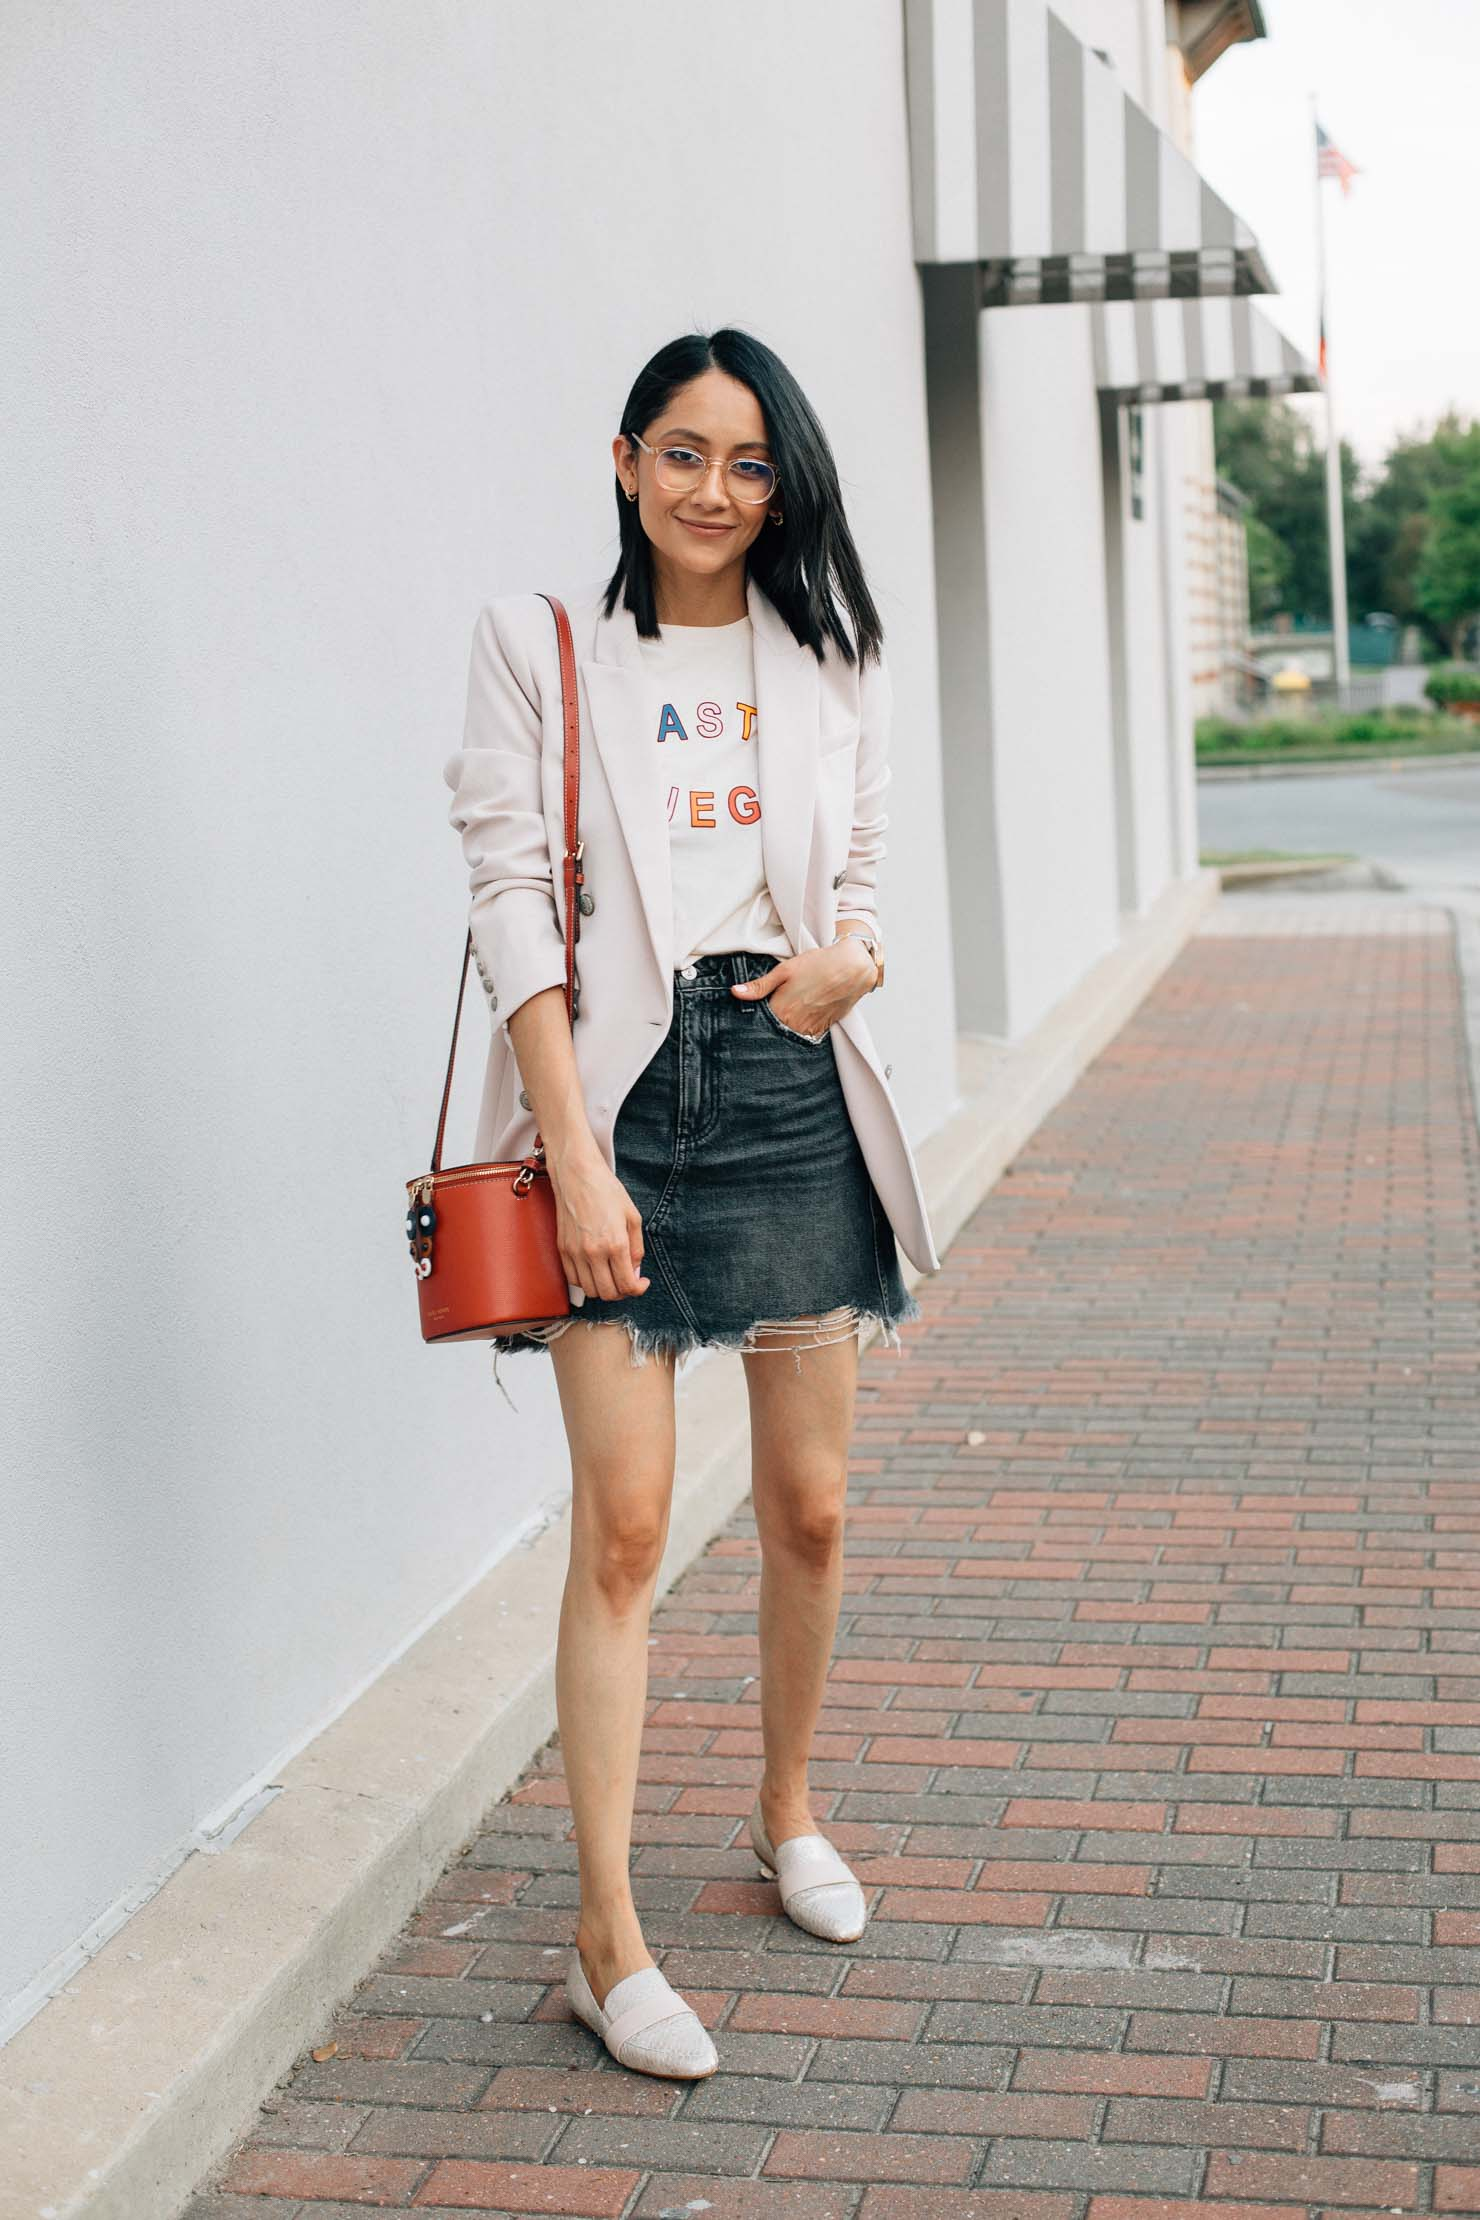 A fall outfit with a denim skirt, blazer and graphic tee.